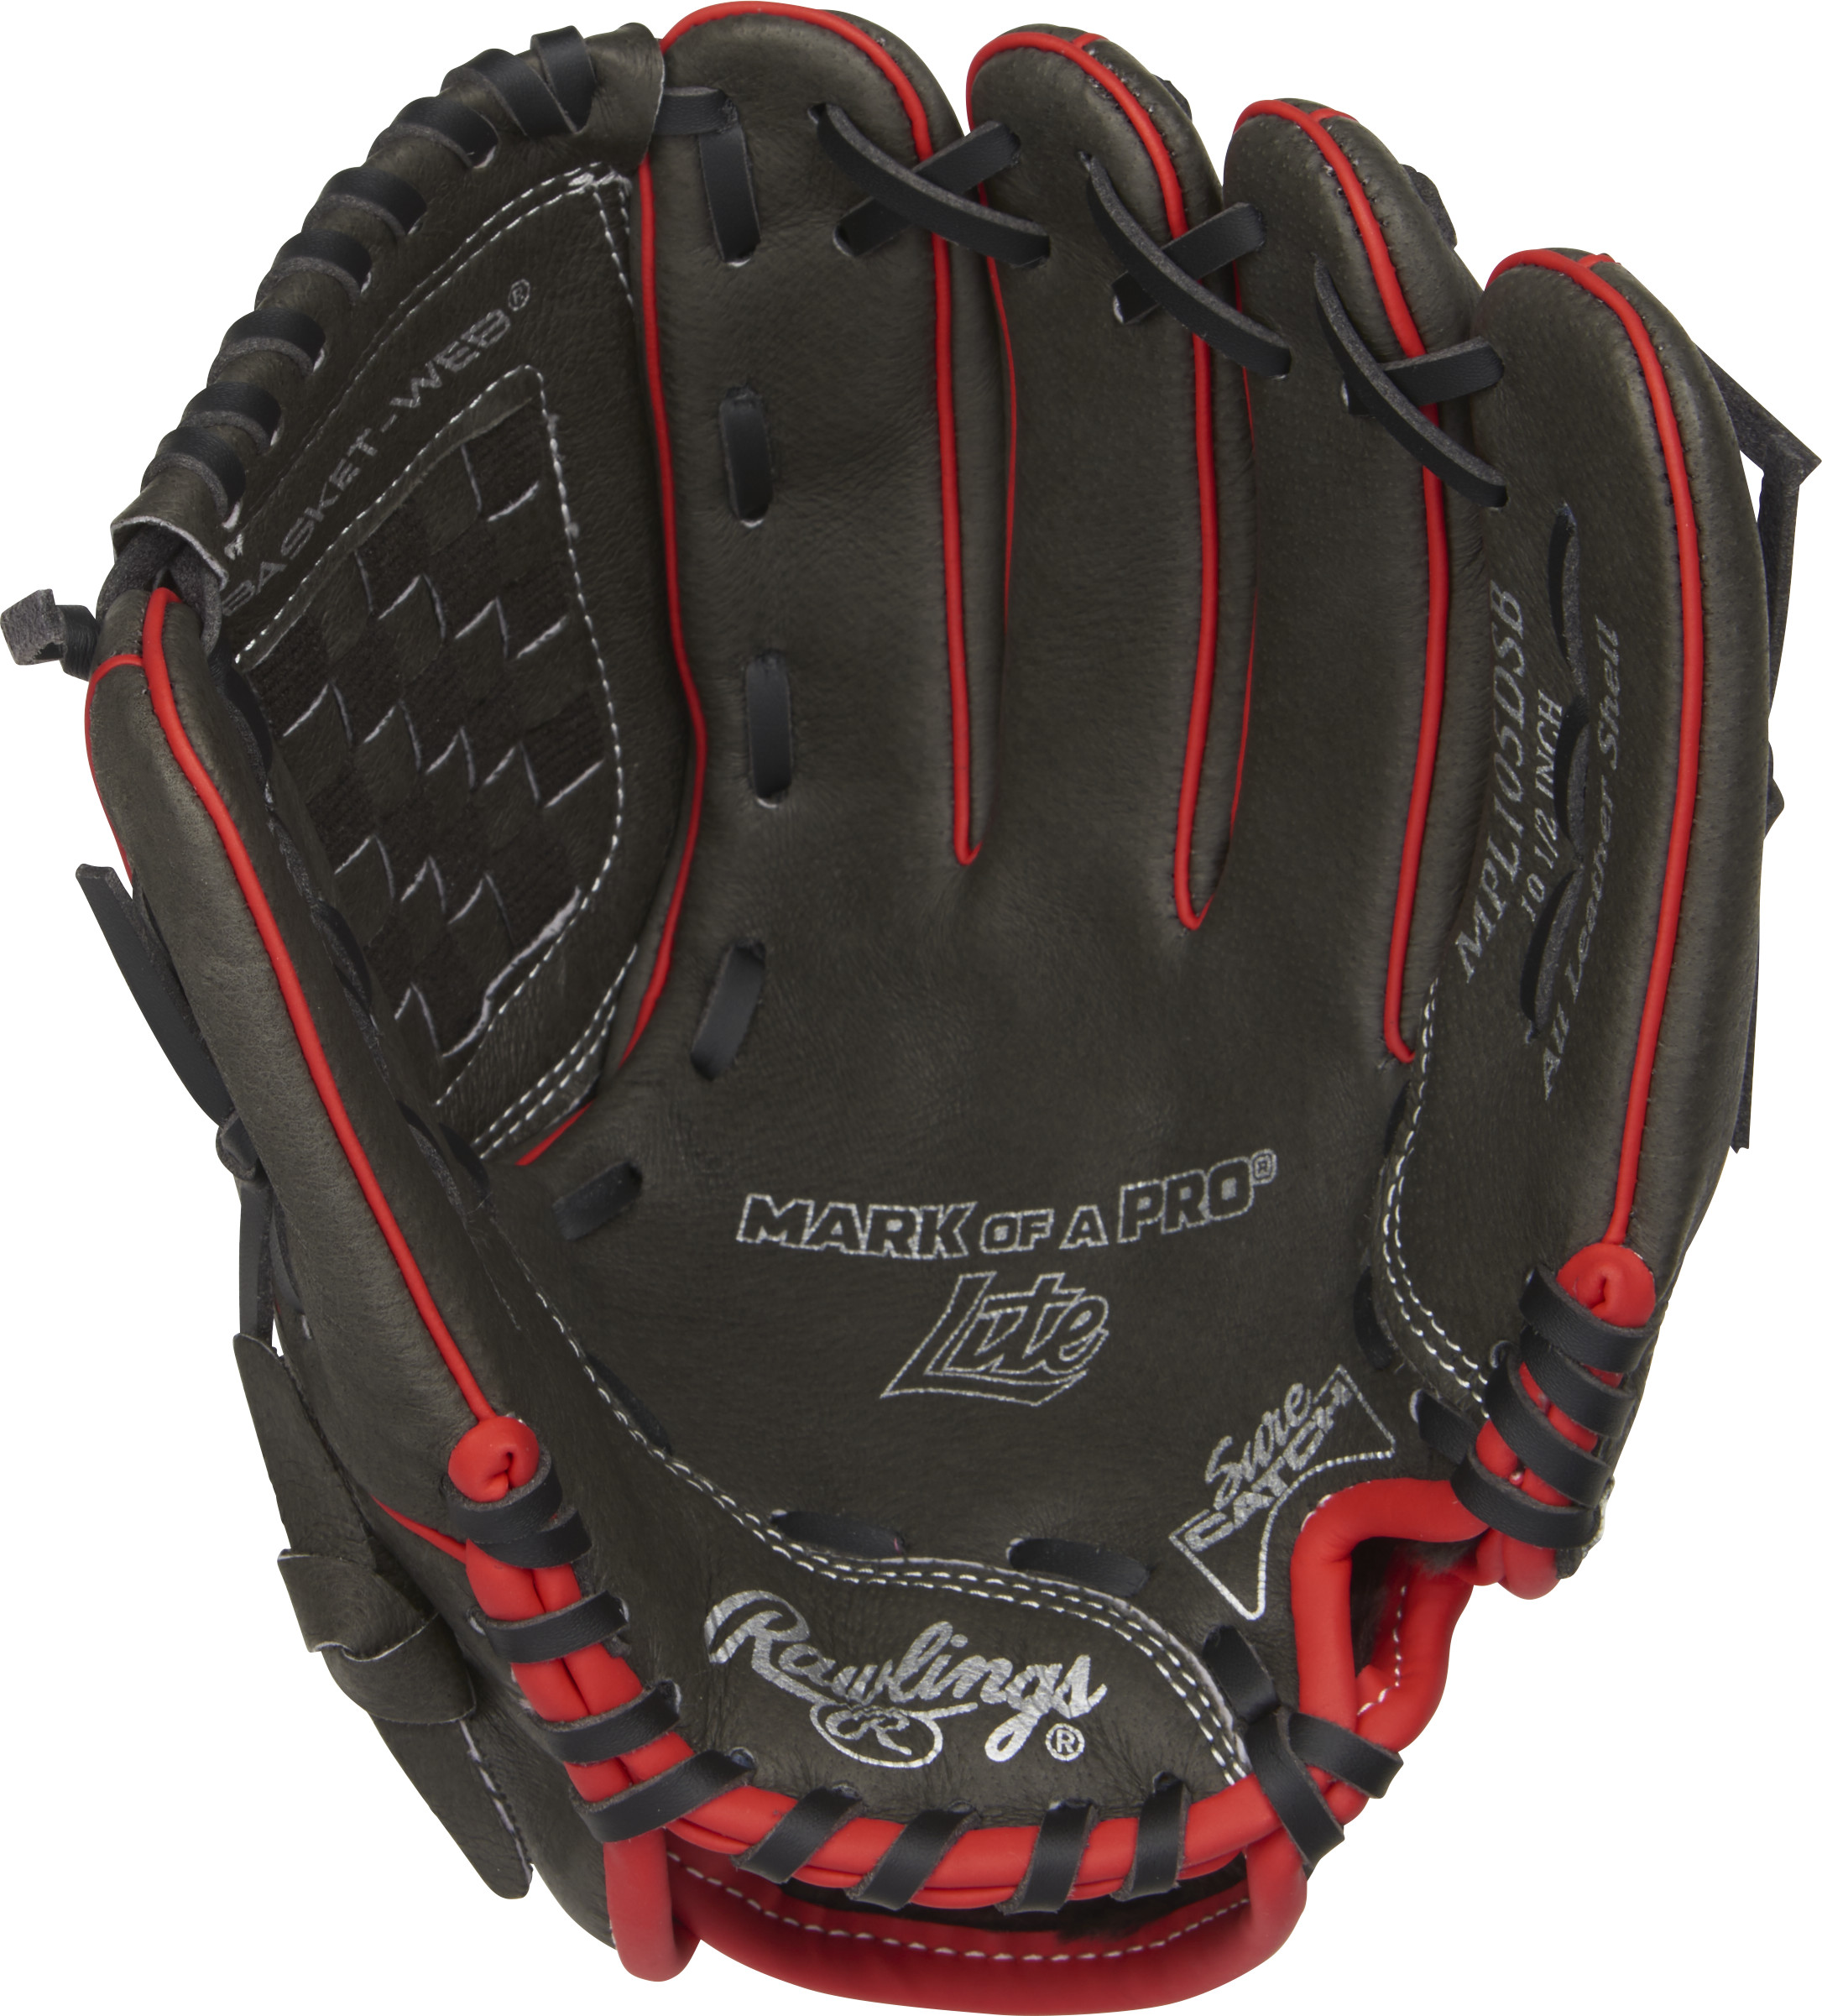 http://www.bestbatdeals.com/images/gloves/rawlings/MPL105DSB-1.jpg